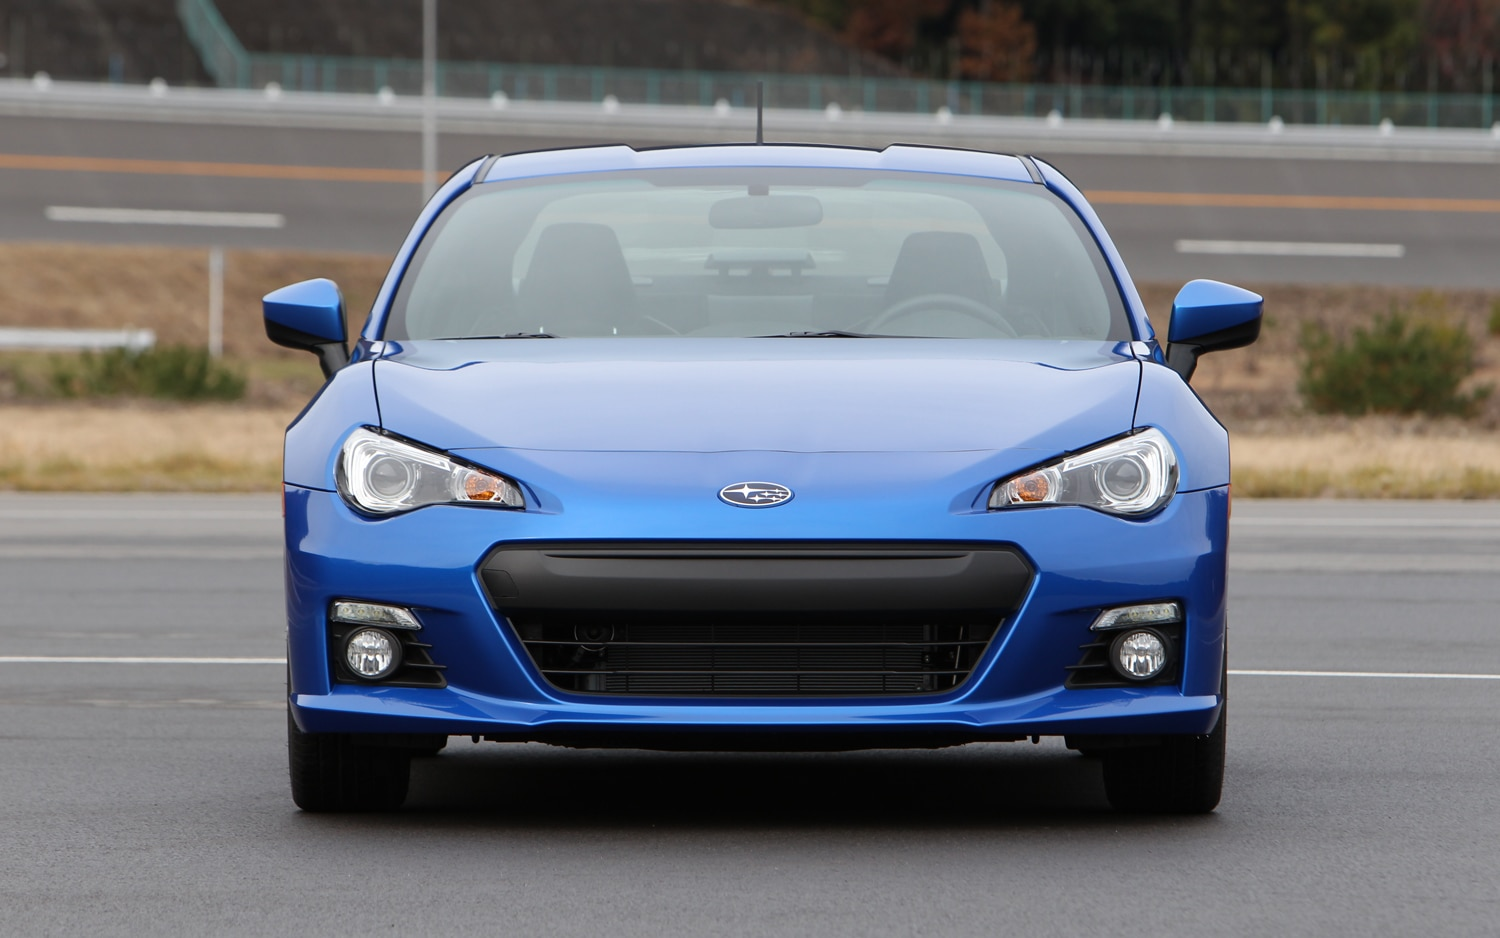 driven: 2013 subaru brz - automobile magazine